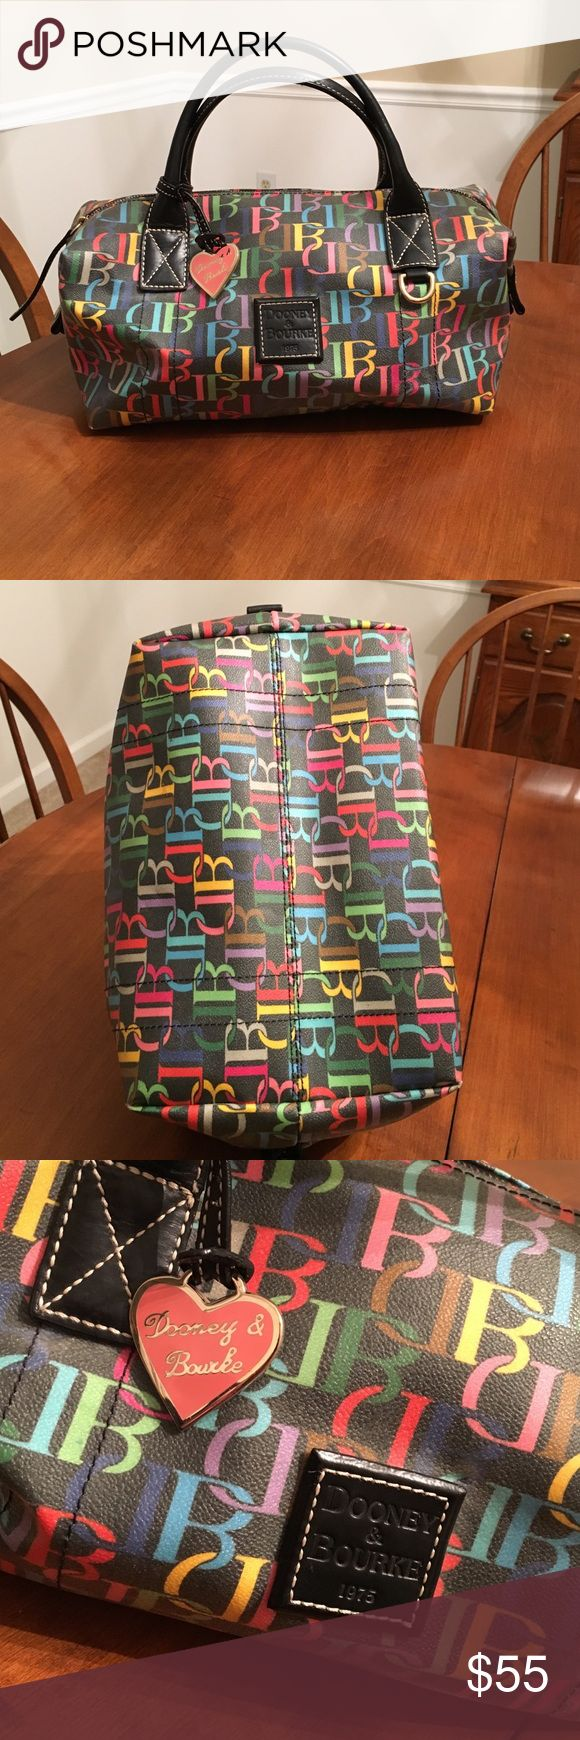 Large Multi color Authentic Dooney and Bourke Black multi color Dooney. Lightly used and in very good condition! Multi colored zipper as well! 12.5 L x 7.5 W X 8 H Dooney & Bourke Bags